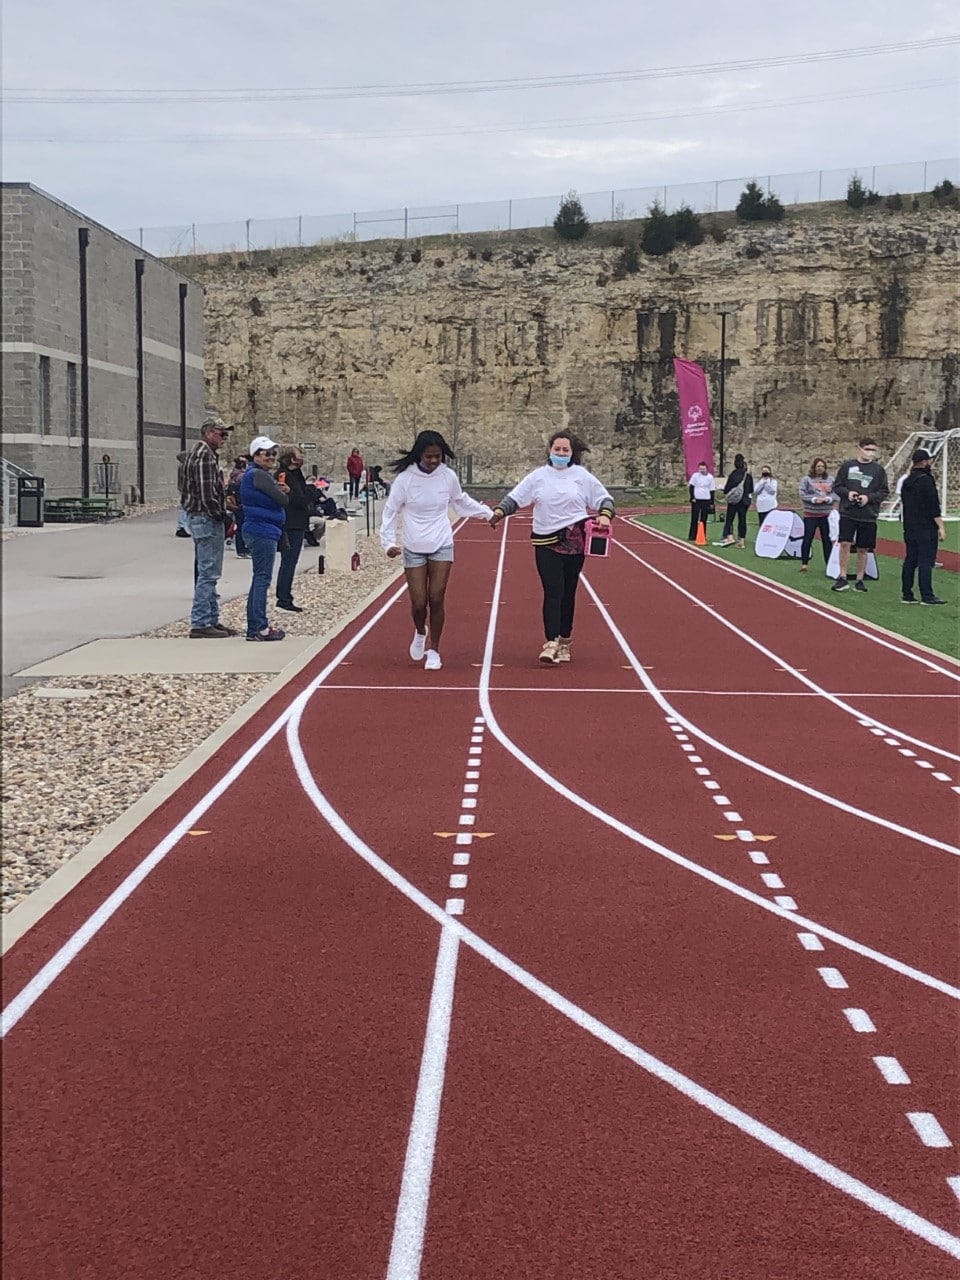 An athlete runs down a track while holding the hand of a volunteer